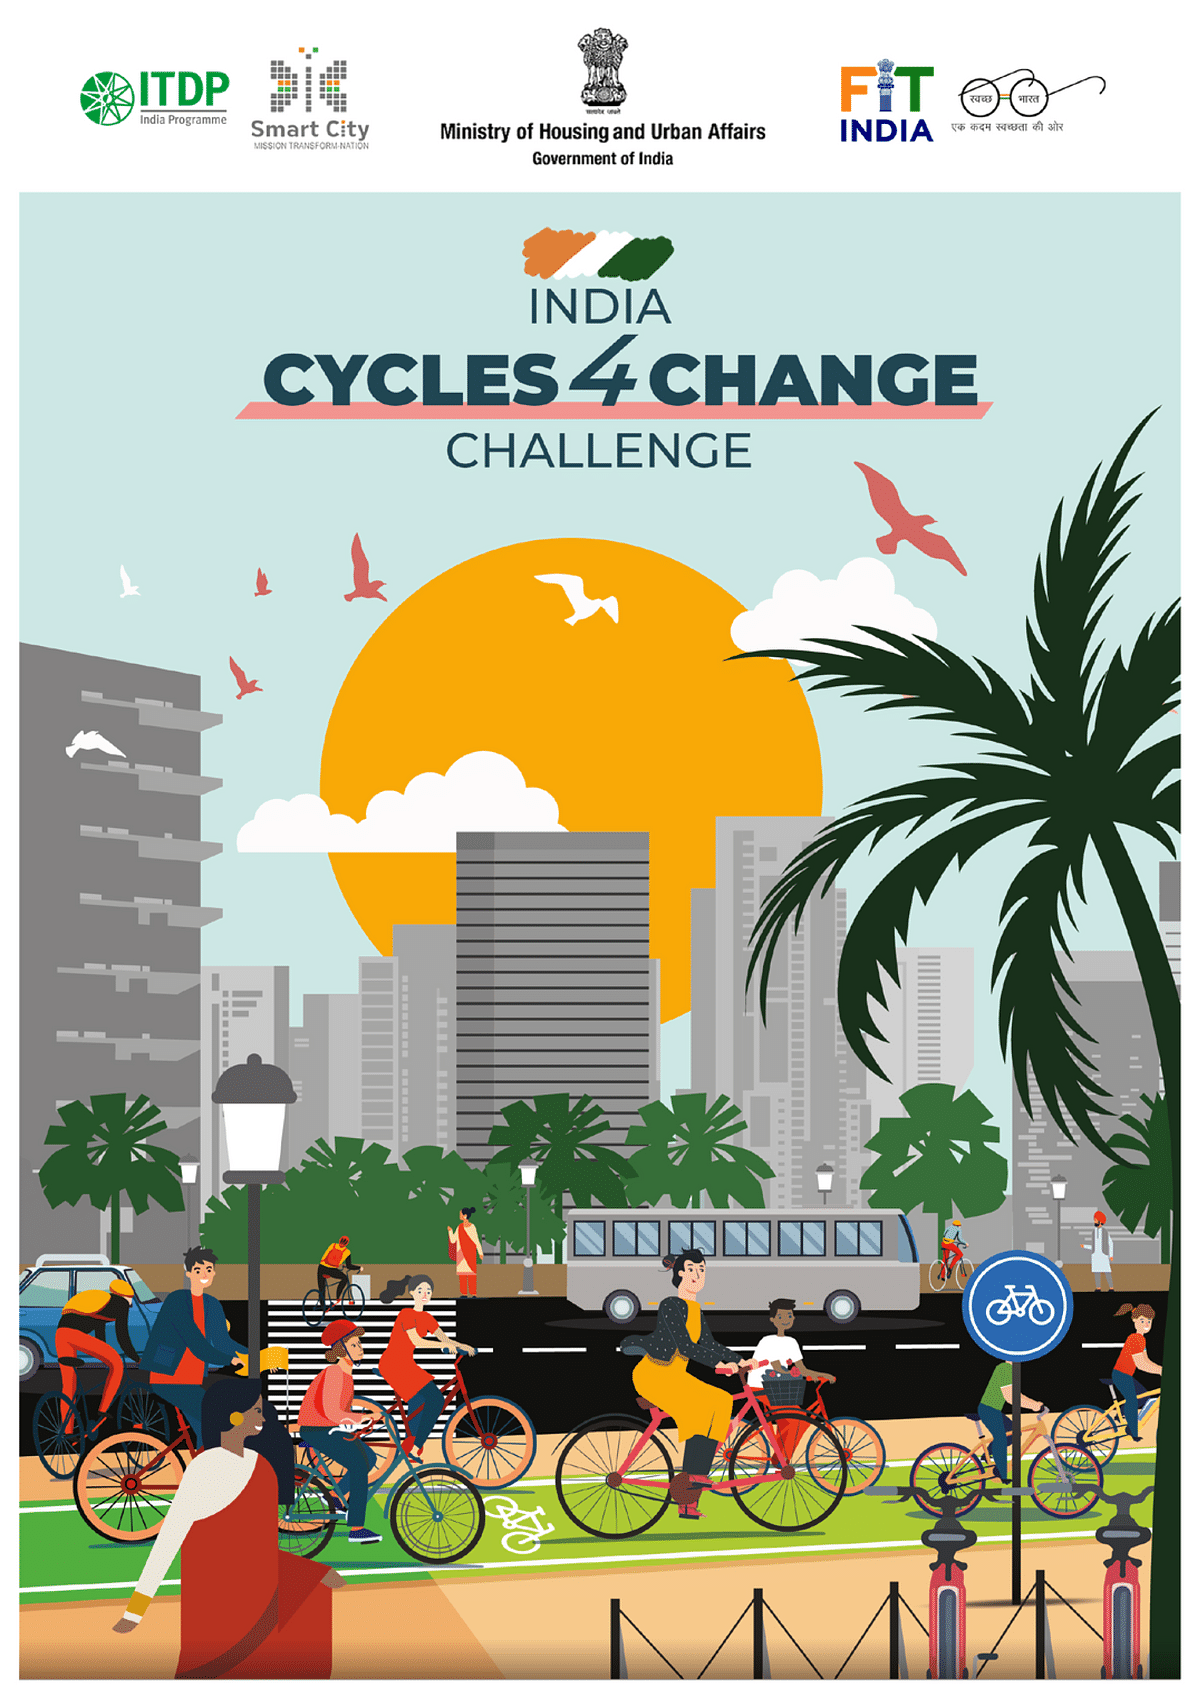 On June 25, Shri Hardeep Singh Puri, Minister of State for Ministry of Housing and Urban Affairs announced the launch of India Cycles 4 Change Challenge